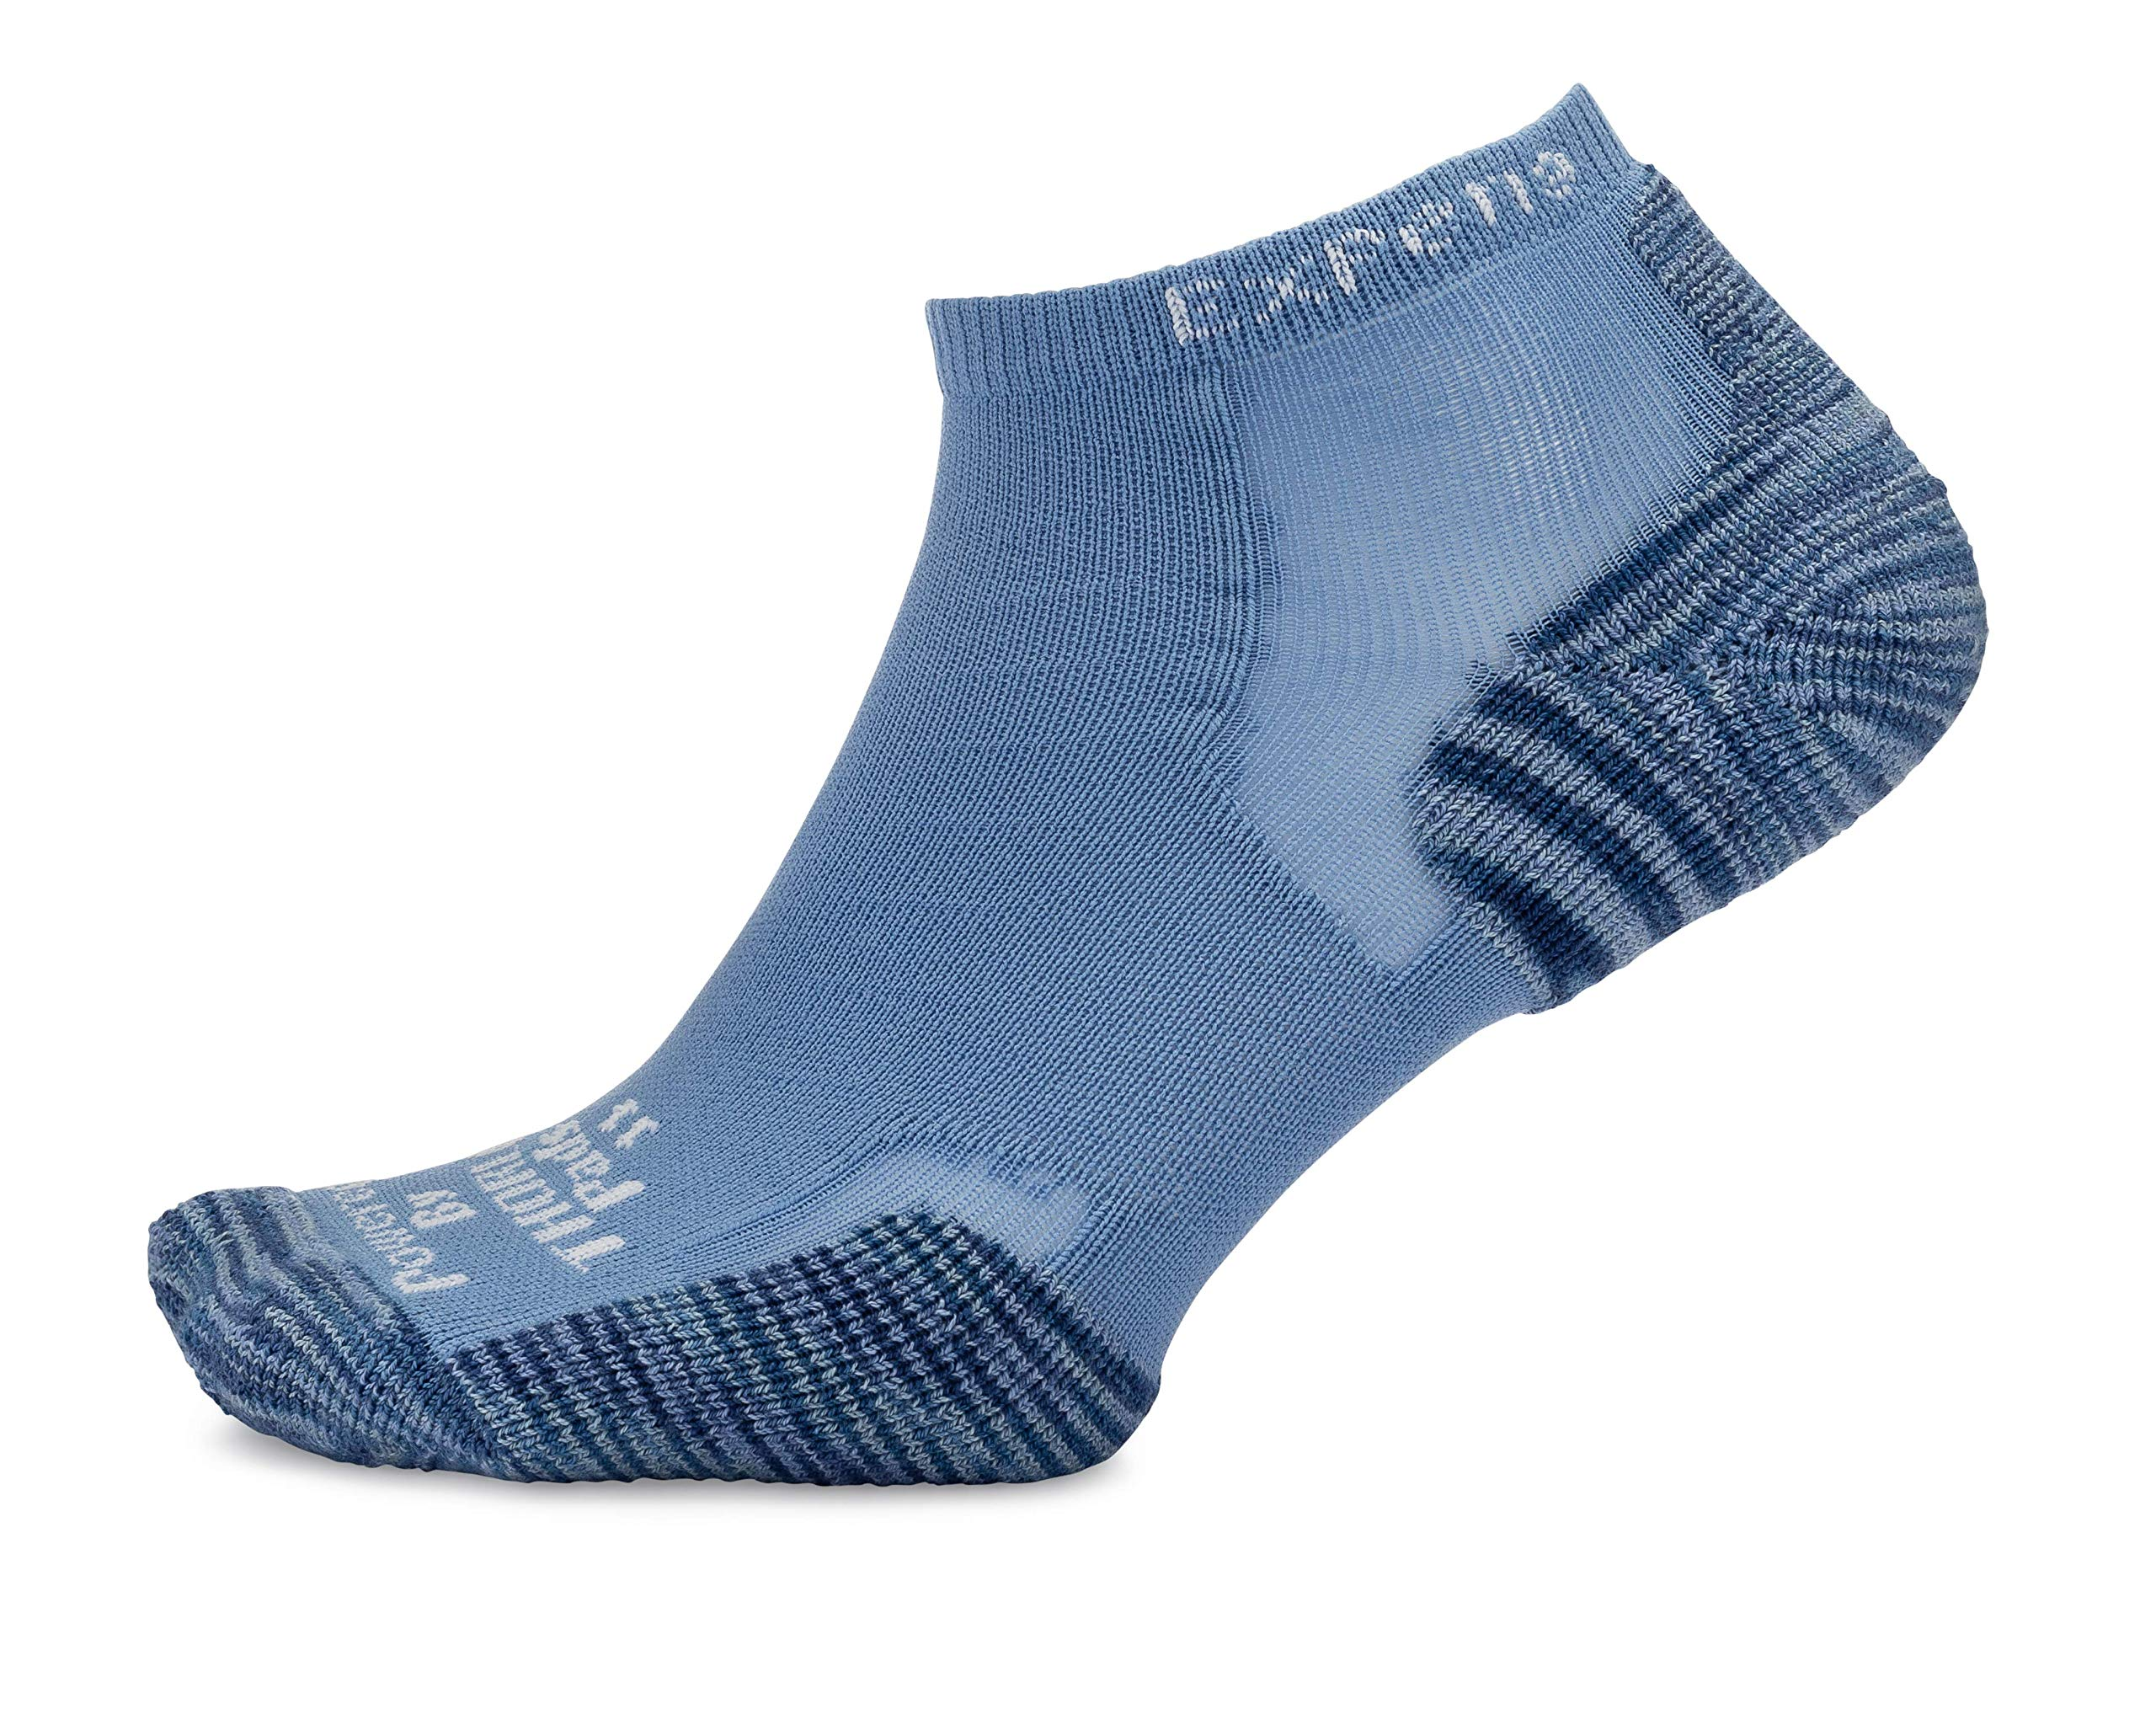 Thorlos Experia XCCU Thin Cushion Running Low Cut Sock, Tiger Paw Steel Blue, M by Thorlos Experia